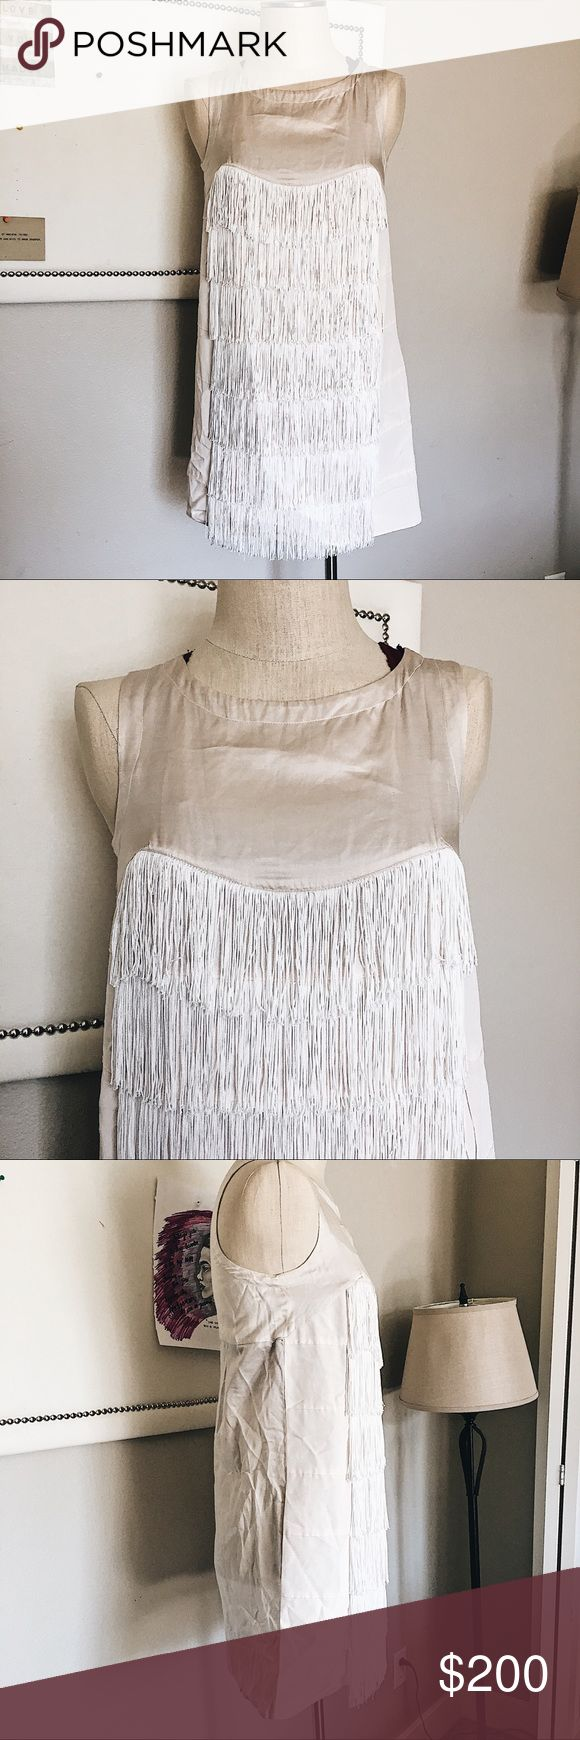 Nude Fringe Dress This dress is fun and flirty, the perfect night out piece. It is a nude beige color with white fringe going down the front. The neck is high giving the piece a sophisticated style. The fringe adds gorgeous movement and shape to the piece. Going down the front, the fabric is layered along with the fringe creating almost ruffles. There is a zip closure up the back of Dress. It is in great condition besides some slight yellowing under the arms. Luxury brand See by Chloe, Size…